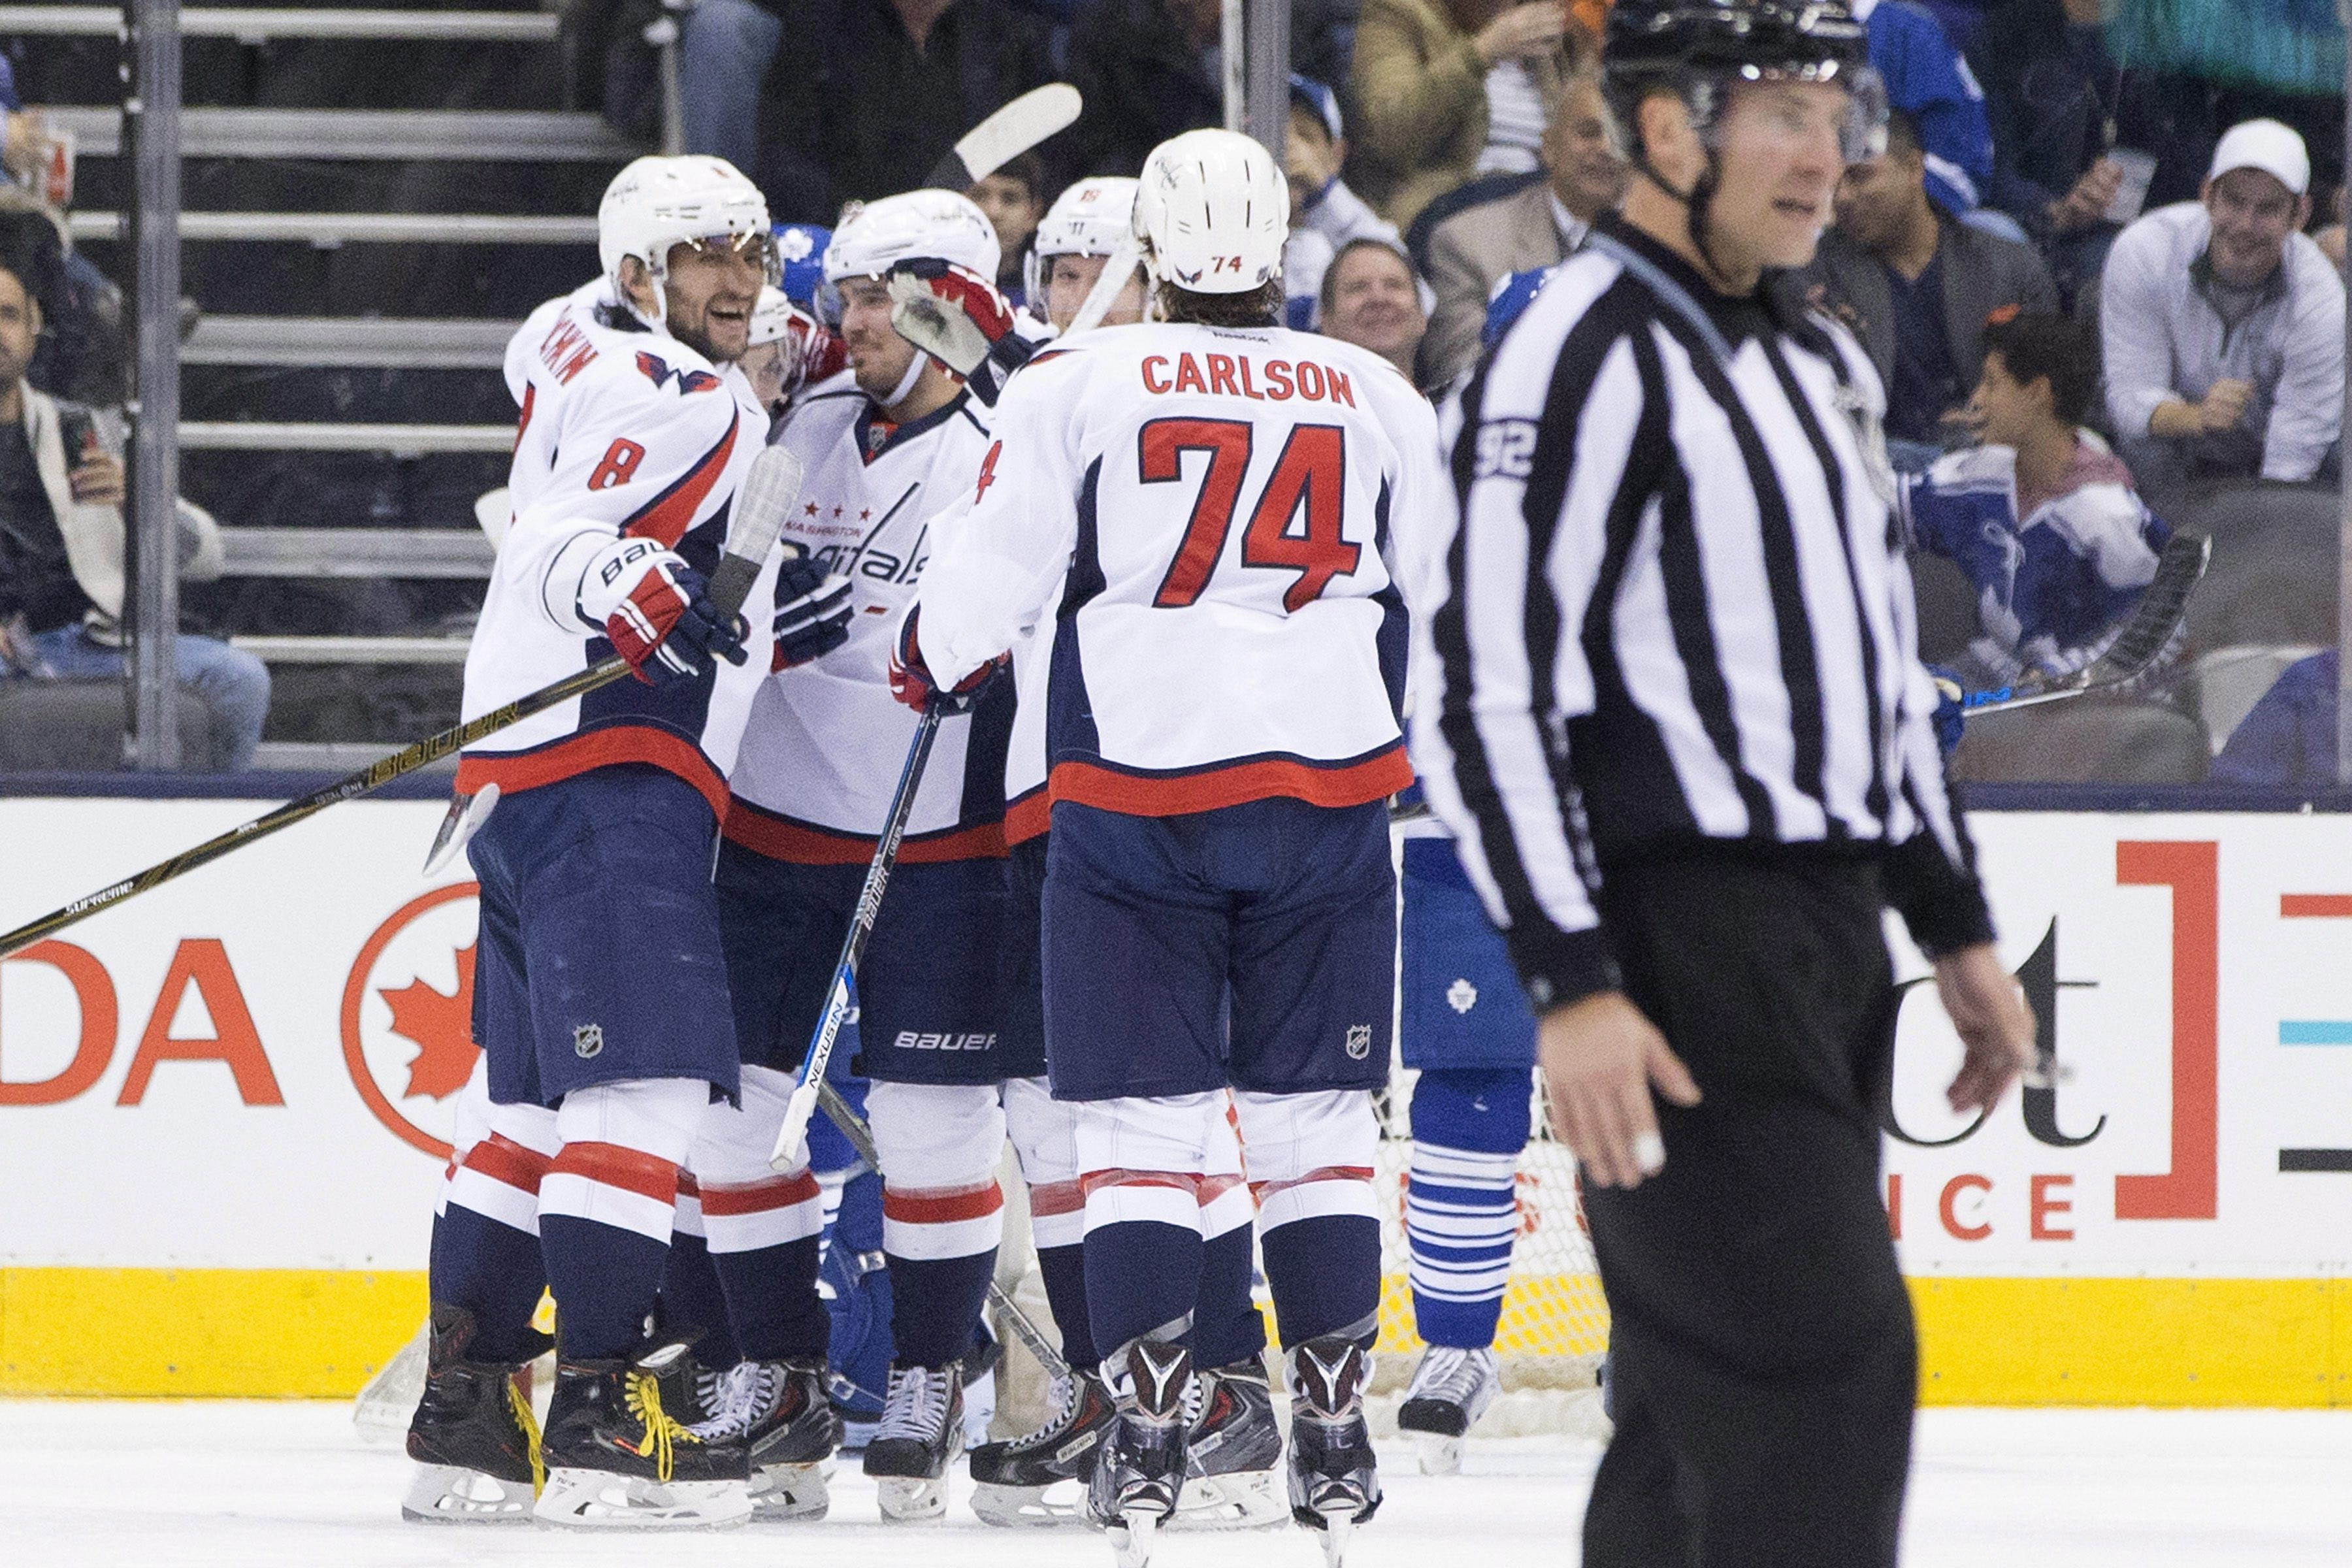 Washington Capitals' Alex Ovechkin (8) celebrates with teammates after scoring his team's third goal against the Toronto Maple Leafs during the second period of an NHL hockey game in Toronto, Saturday, Nov. 28, 2015. (Chris Young/The Canadian Press via AP